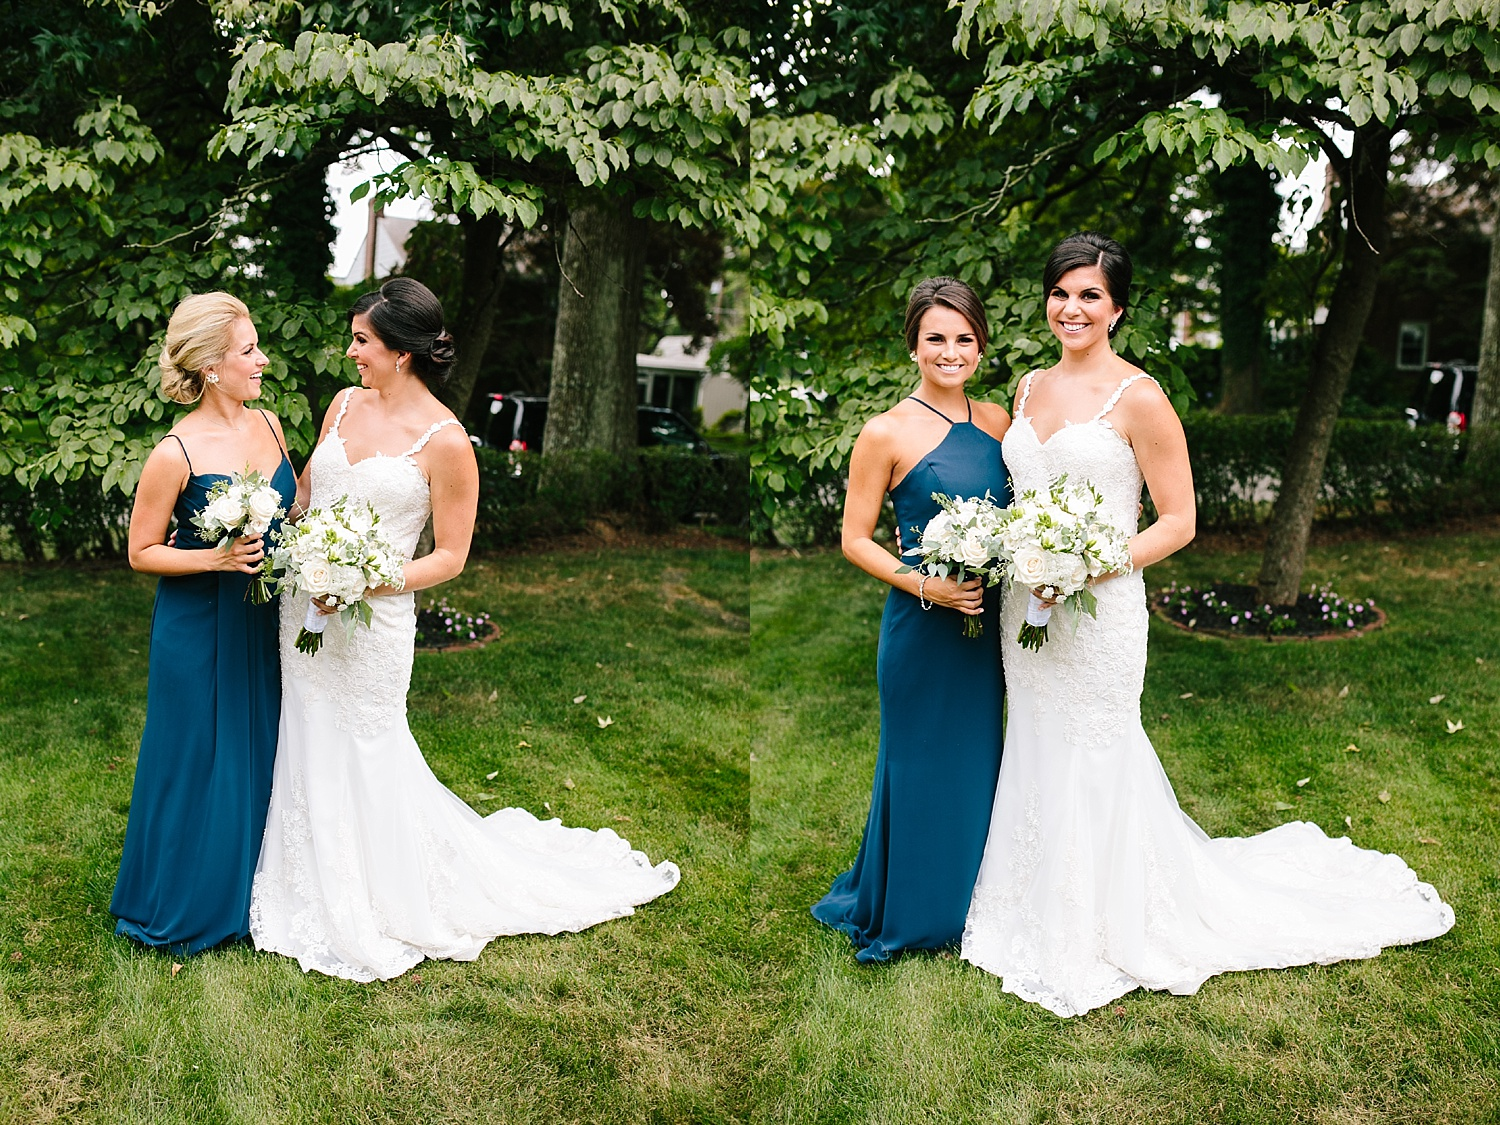 emilyandjoe_bluebell_countryclub_philadelphia_wedding_image040.jpg